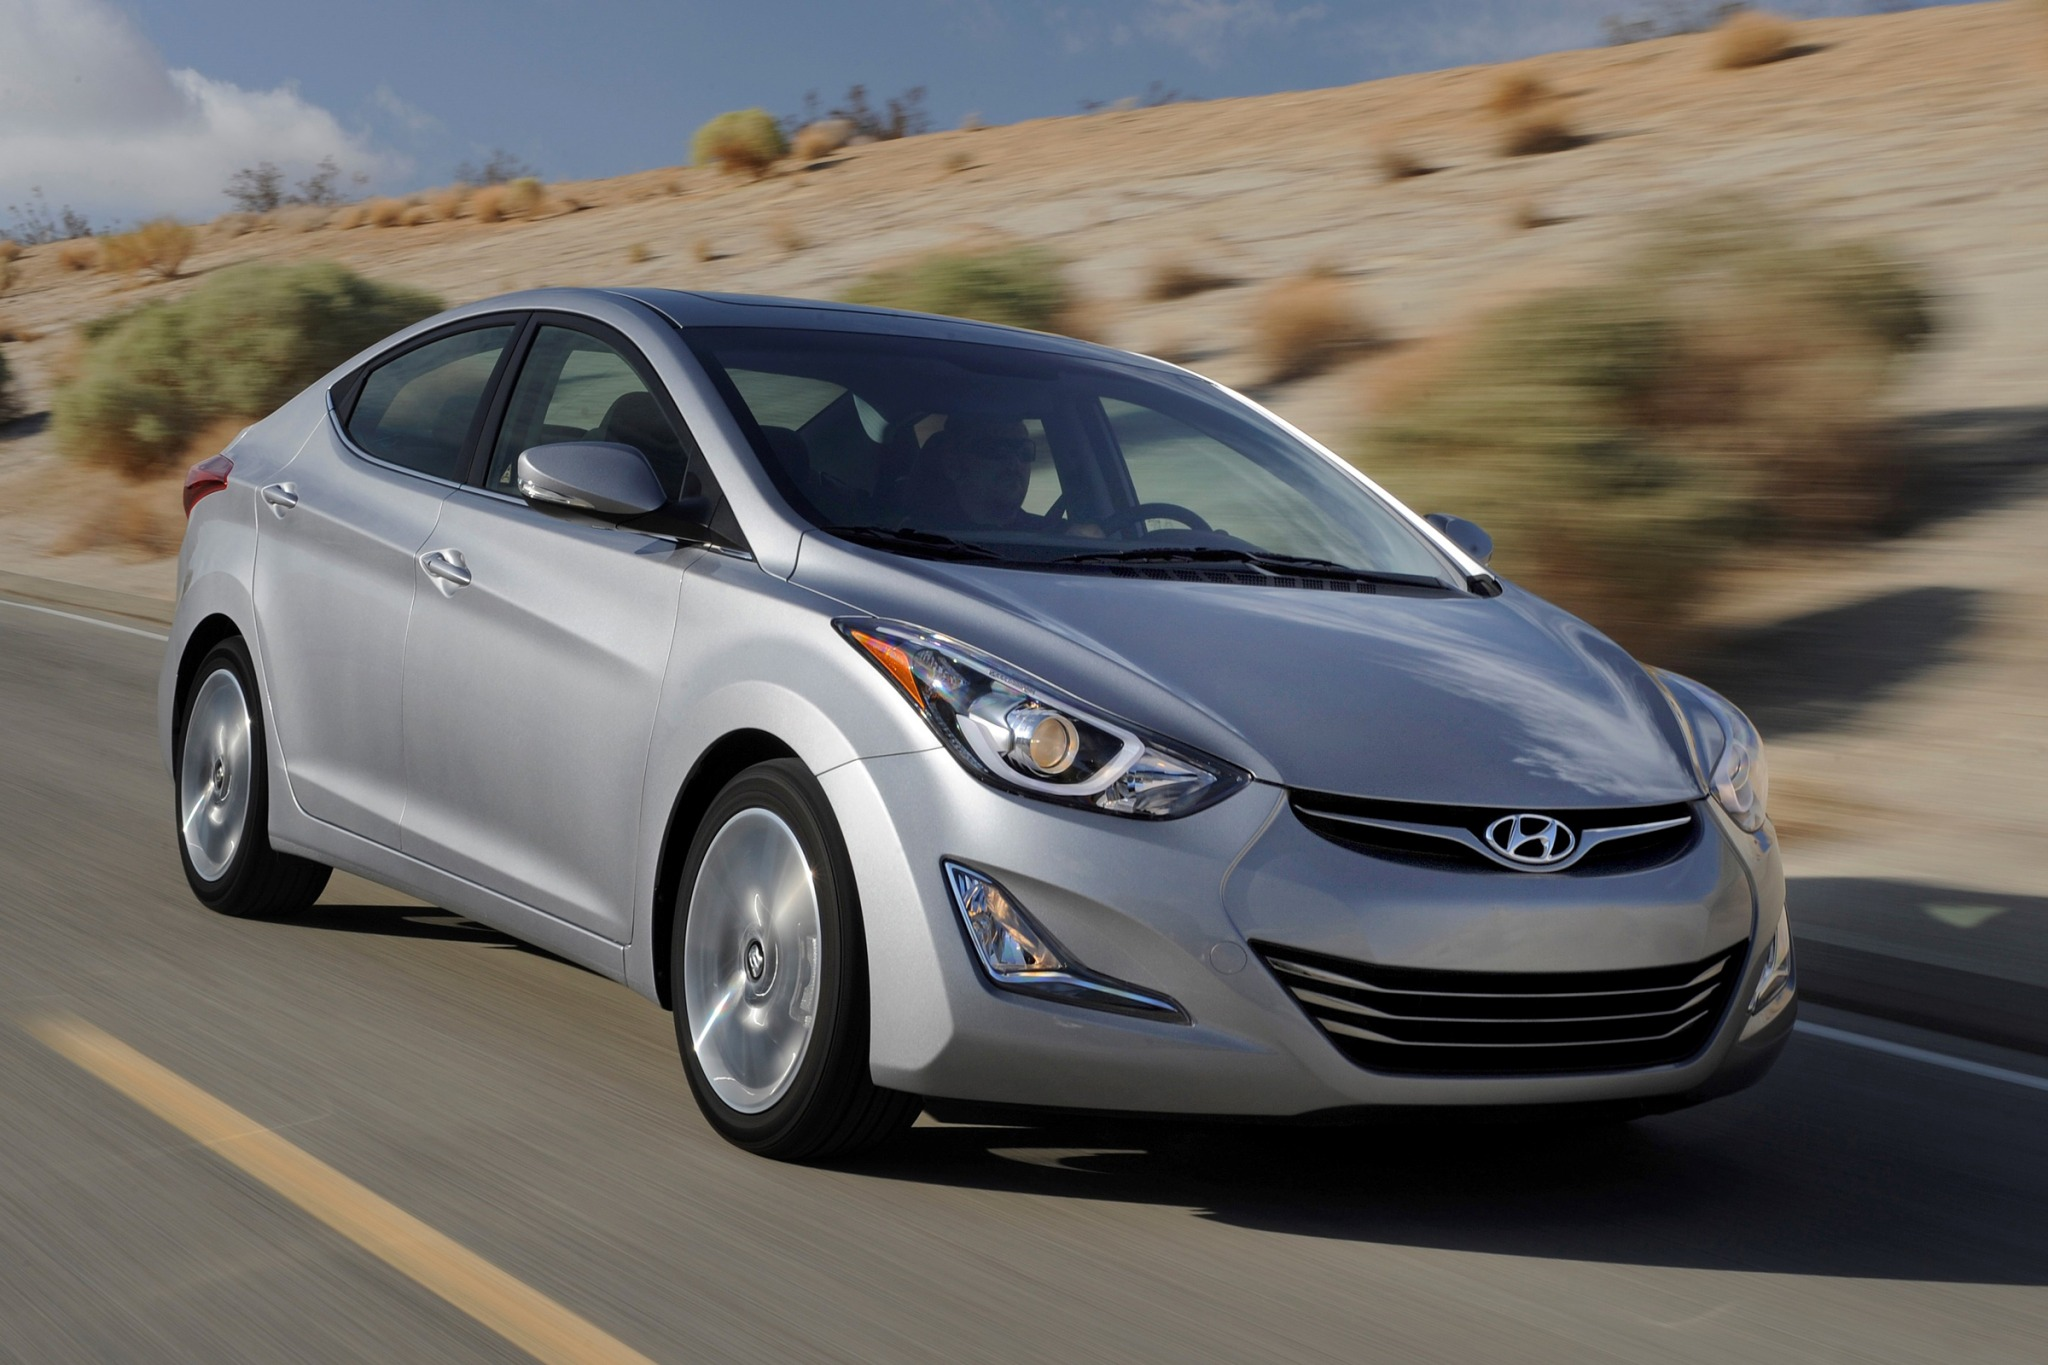 Maintenance Schedule For 2014 Hyundai Elantra Openbay